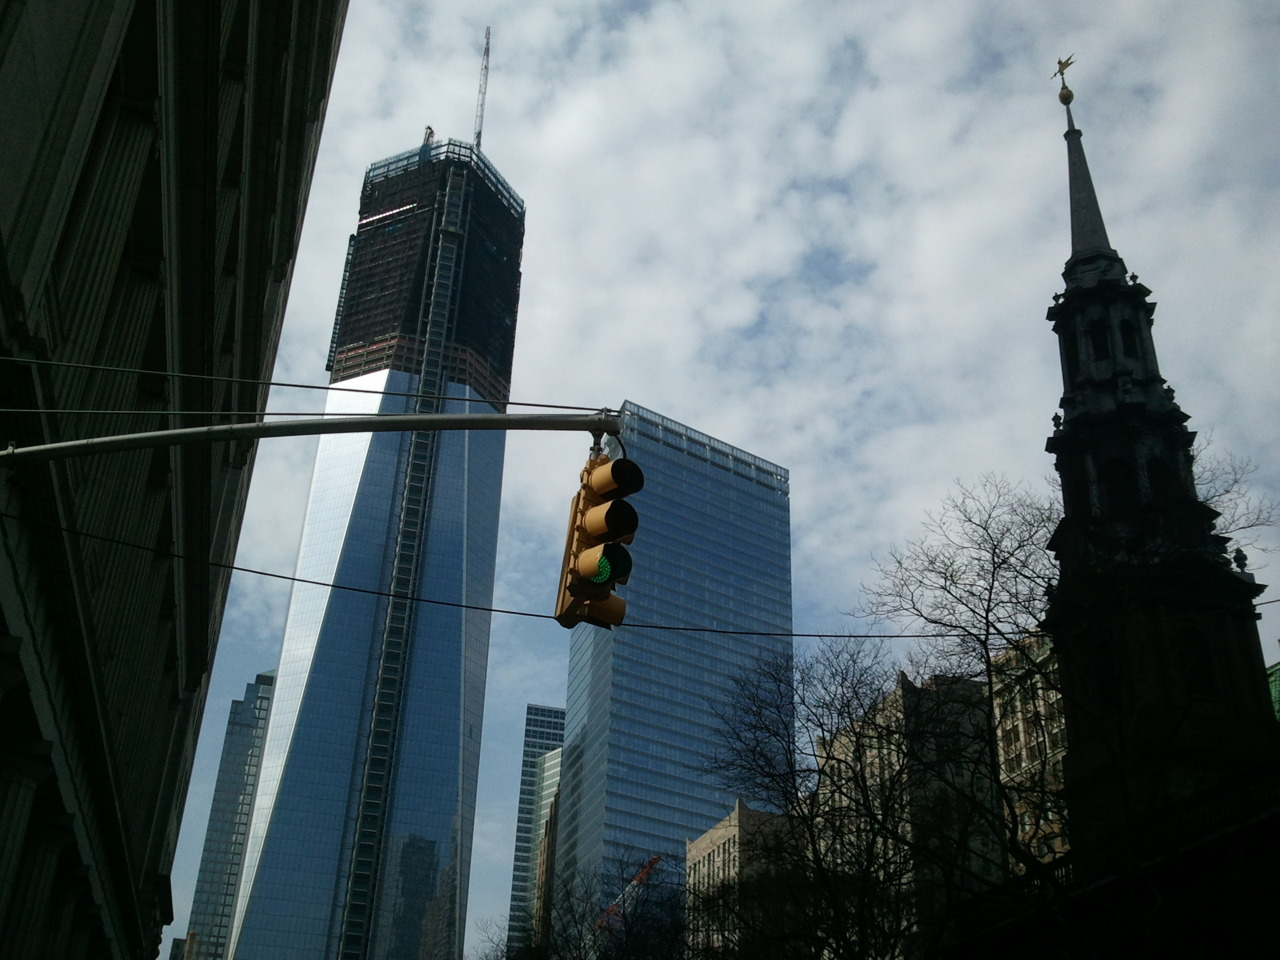 Le Freedom Tower.Camera: Samsung Focus.